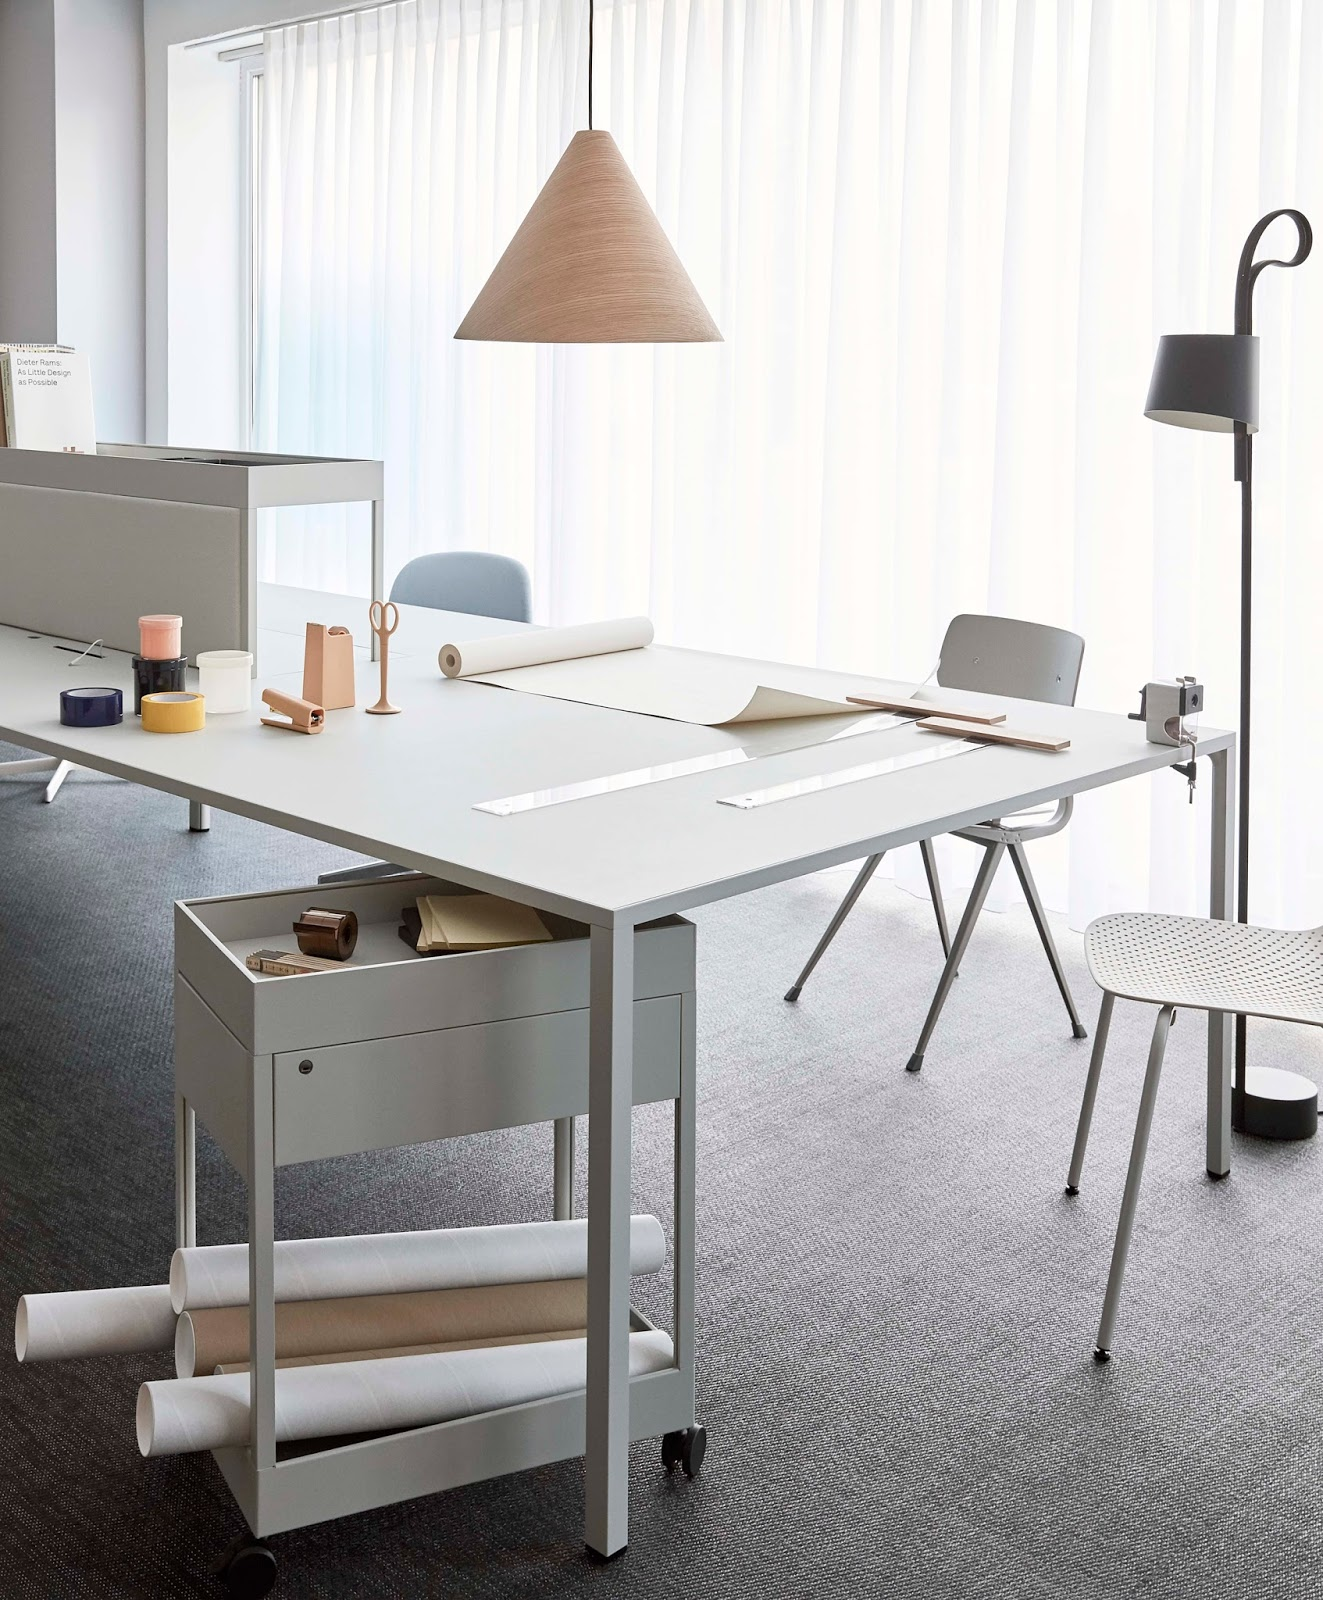 amm blog hay 39 s 2 0 installation examines the future of creative workspaces for stockholm design. Black Bedroom Furniture Sets. Home Design Ideas